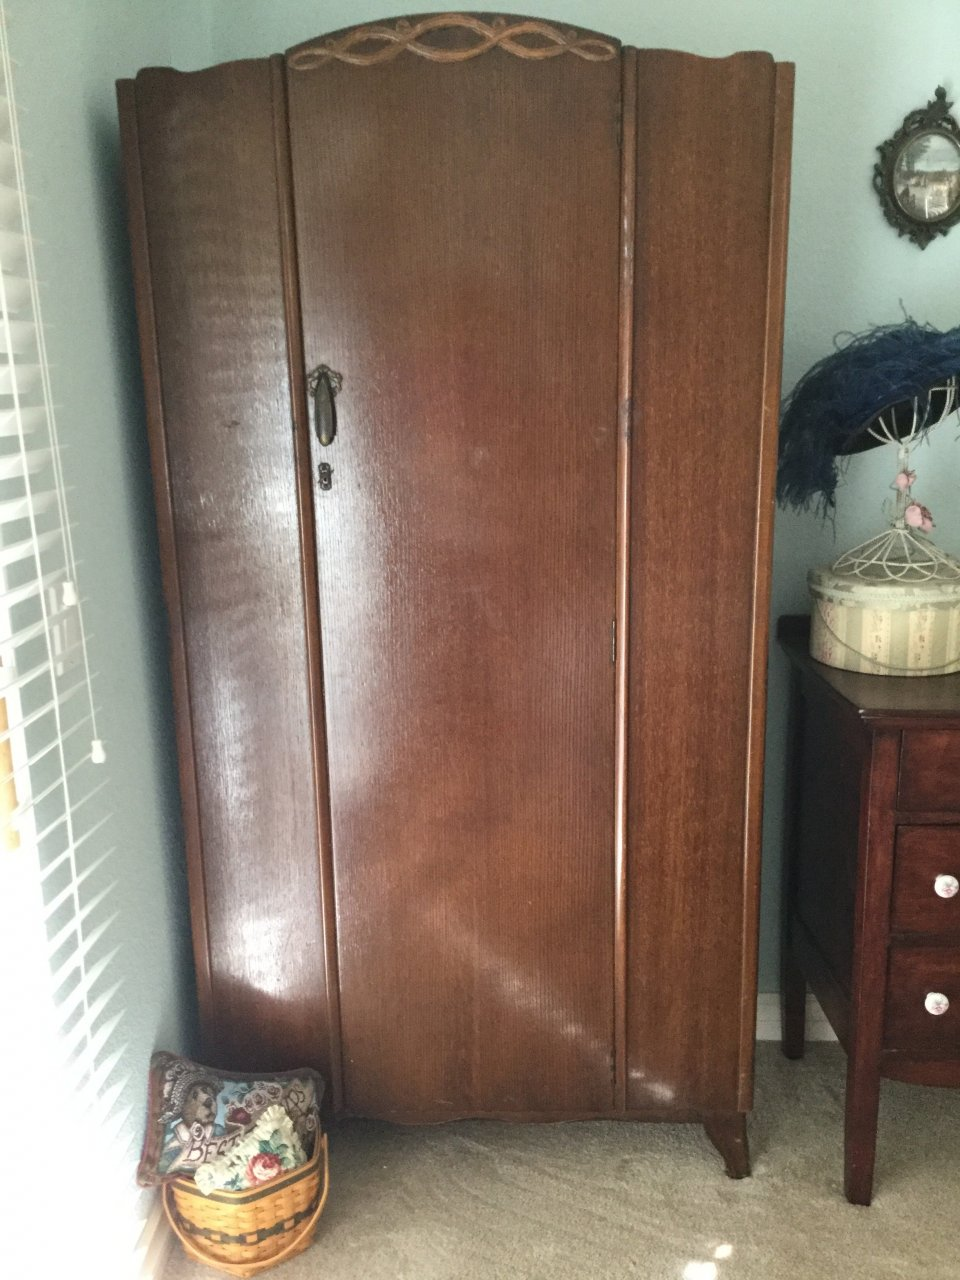 I Have A Lebus Armoire, It Looks Like It Was Made To Be A Childu0027s Closet,  W... Guest 8 Months Ago